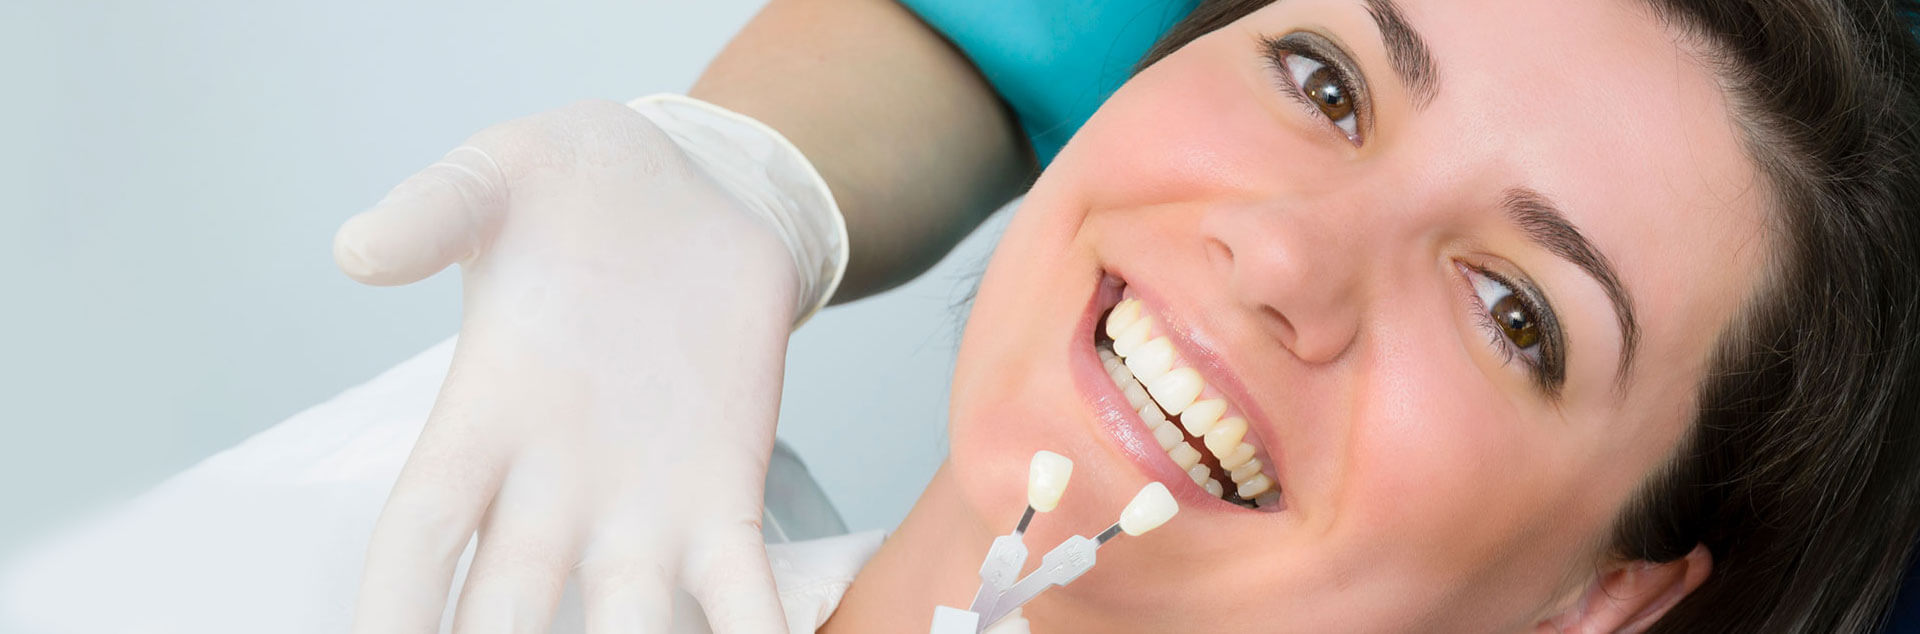 Female patient smiling while comparing her teeth with pair of dental crowns